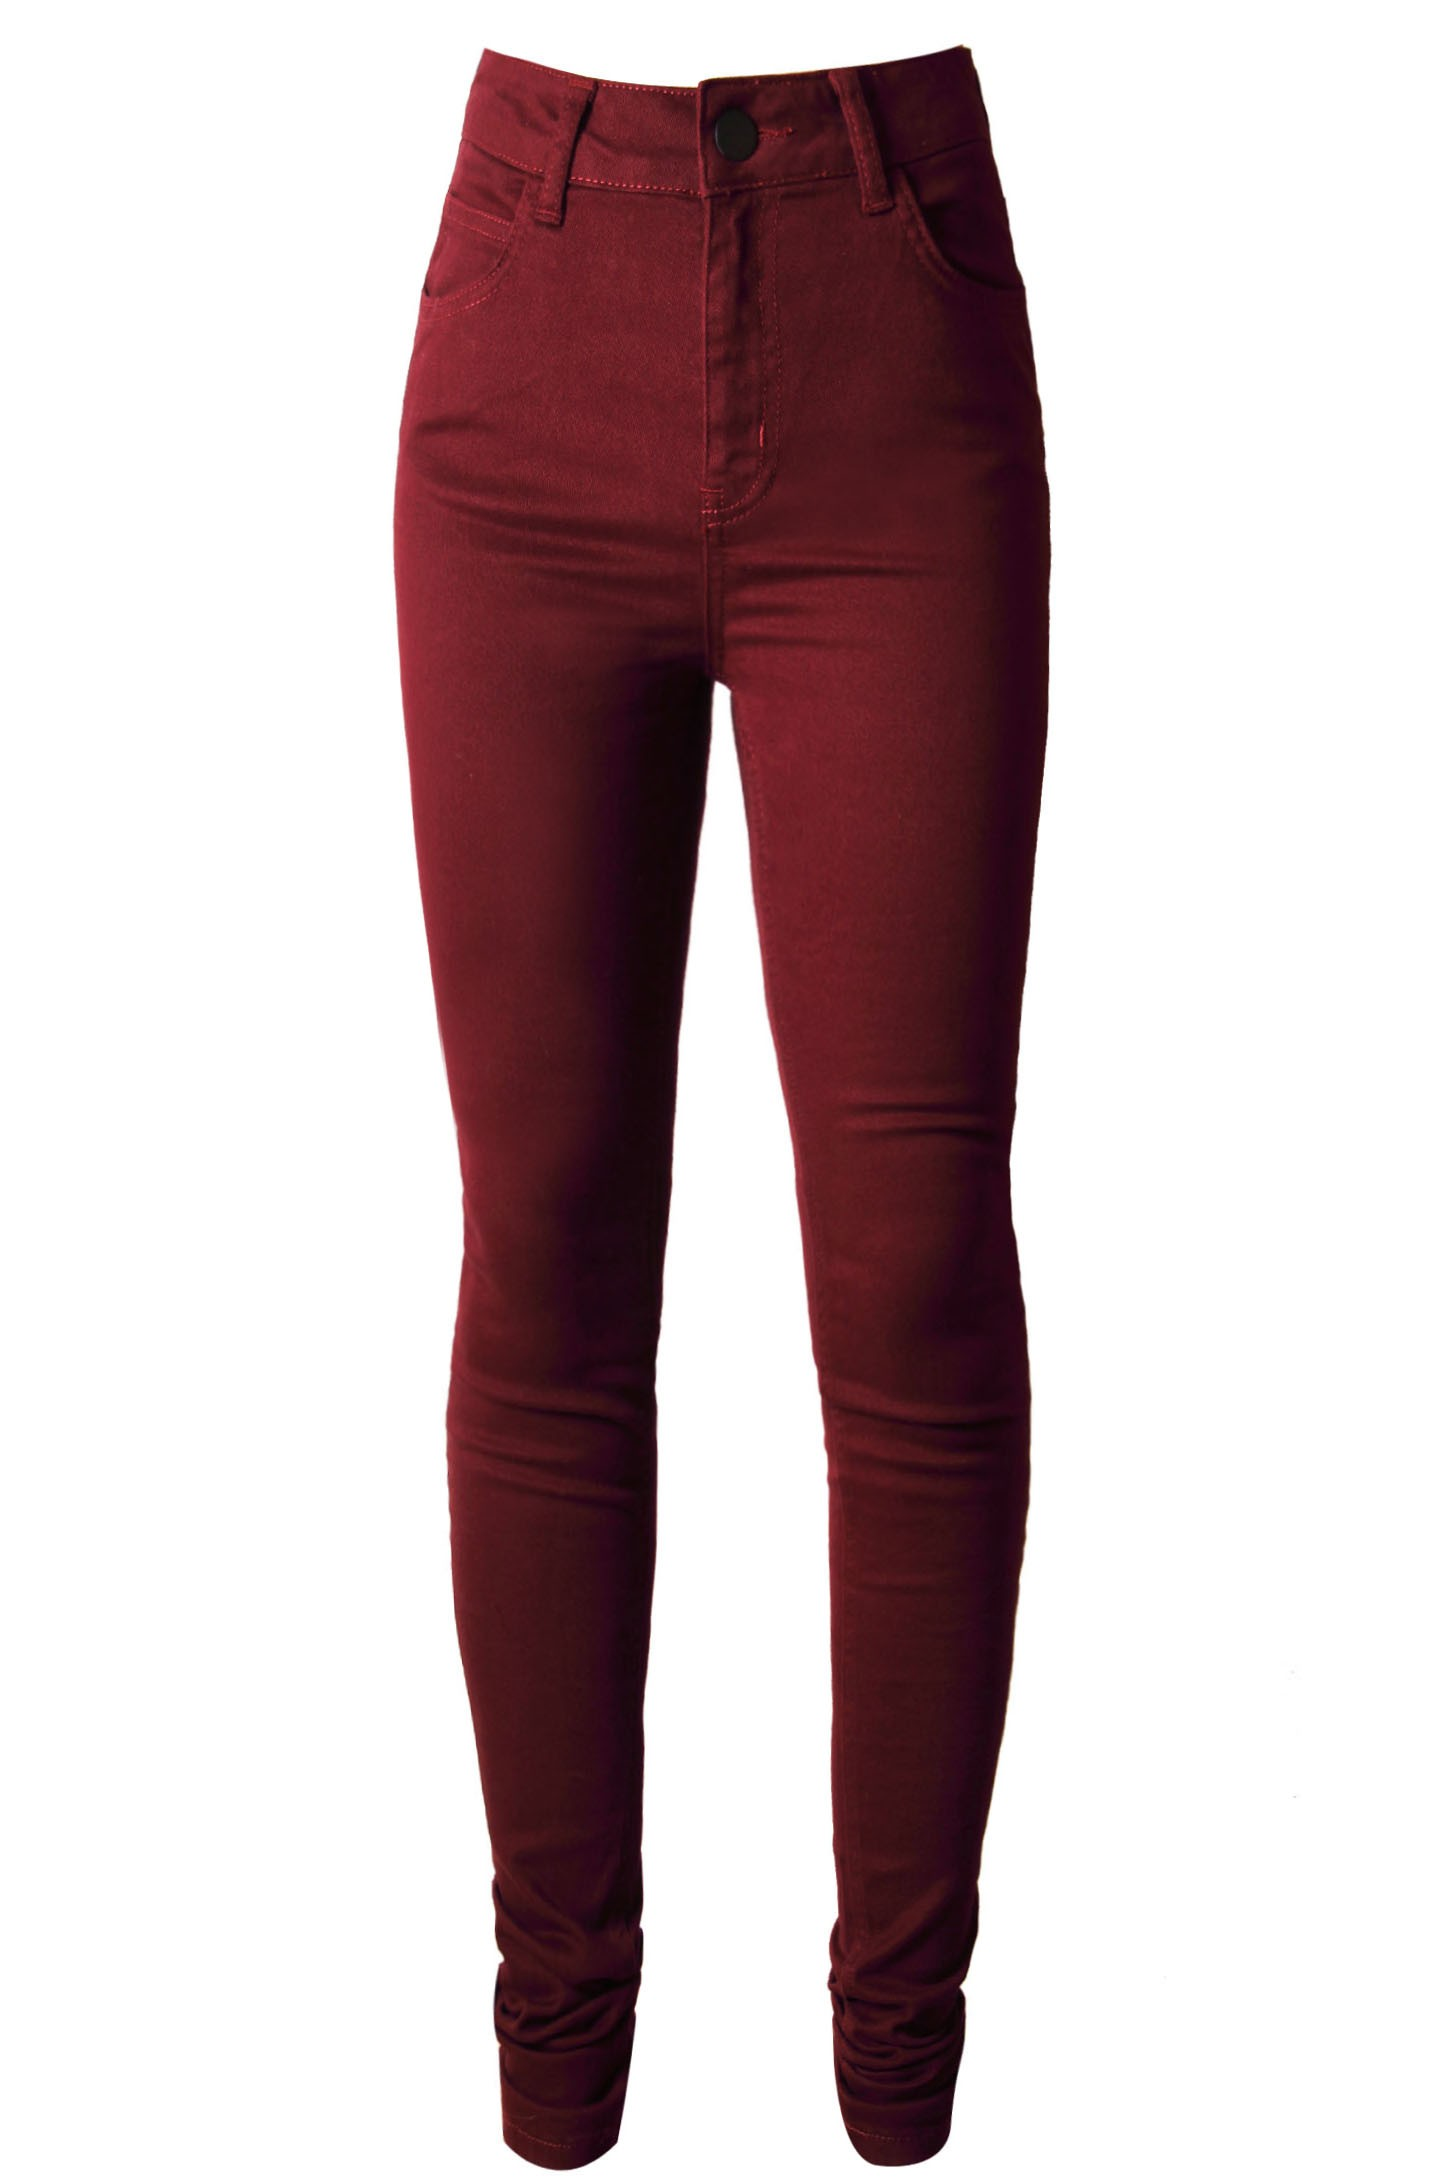 Burgundy High Waisted Skinny Jeans - Styligion.com